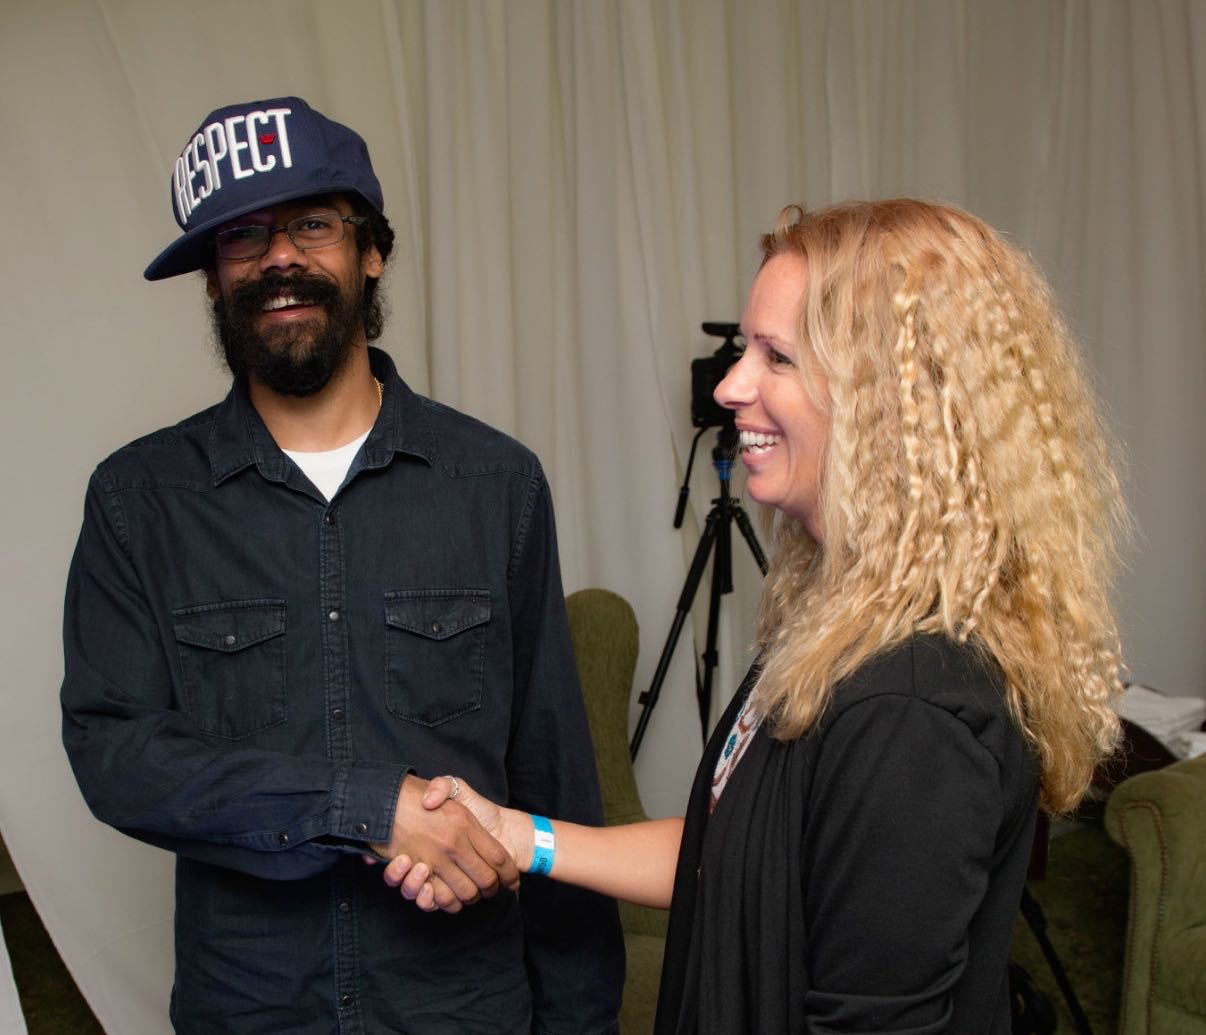 Local artist gifts special painting to damian marley at antigua damian marley thanking naydene gonnella thecheapjerseys Image collections